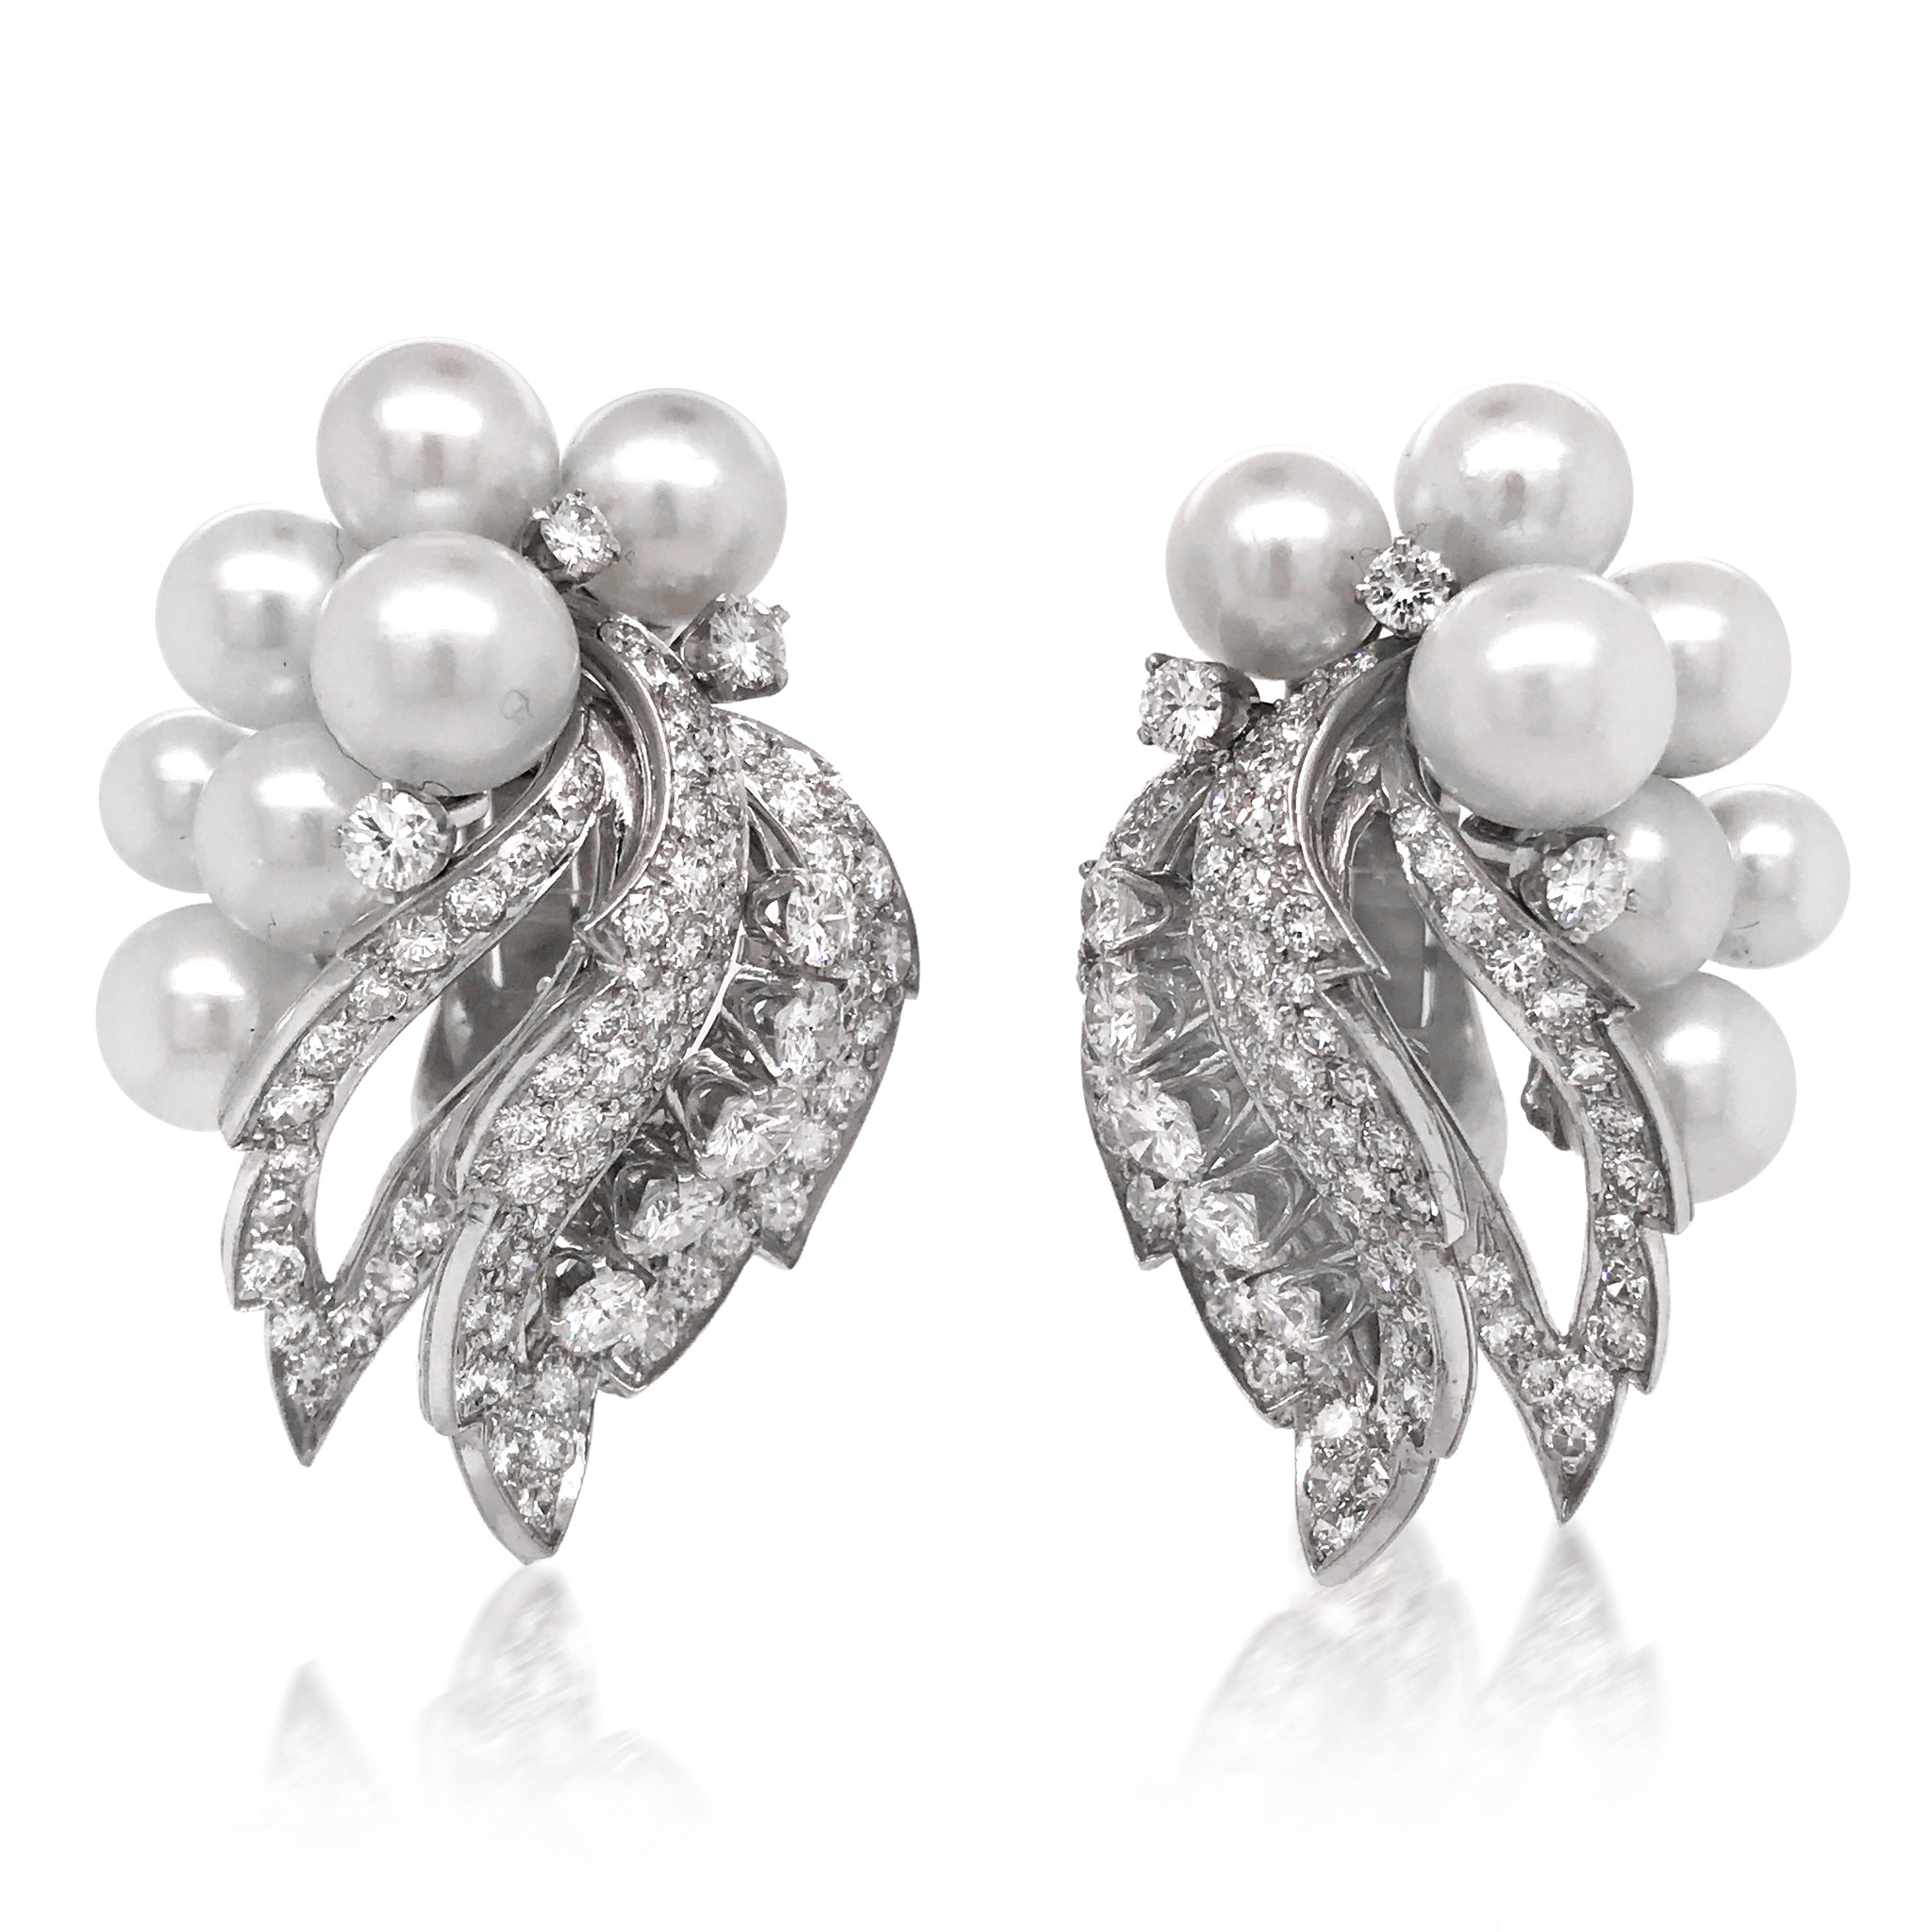 David Webb, 18K White Gold Diamond Pearl Earrings - Lueur Jewelry